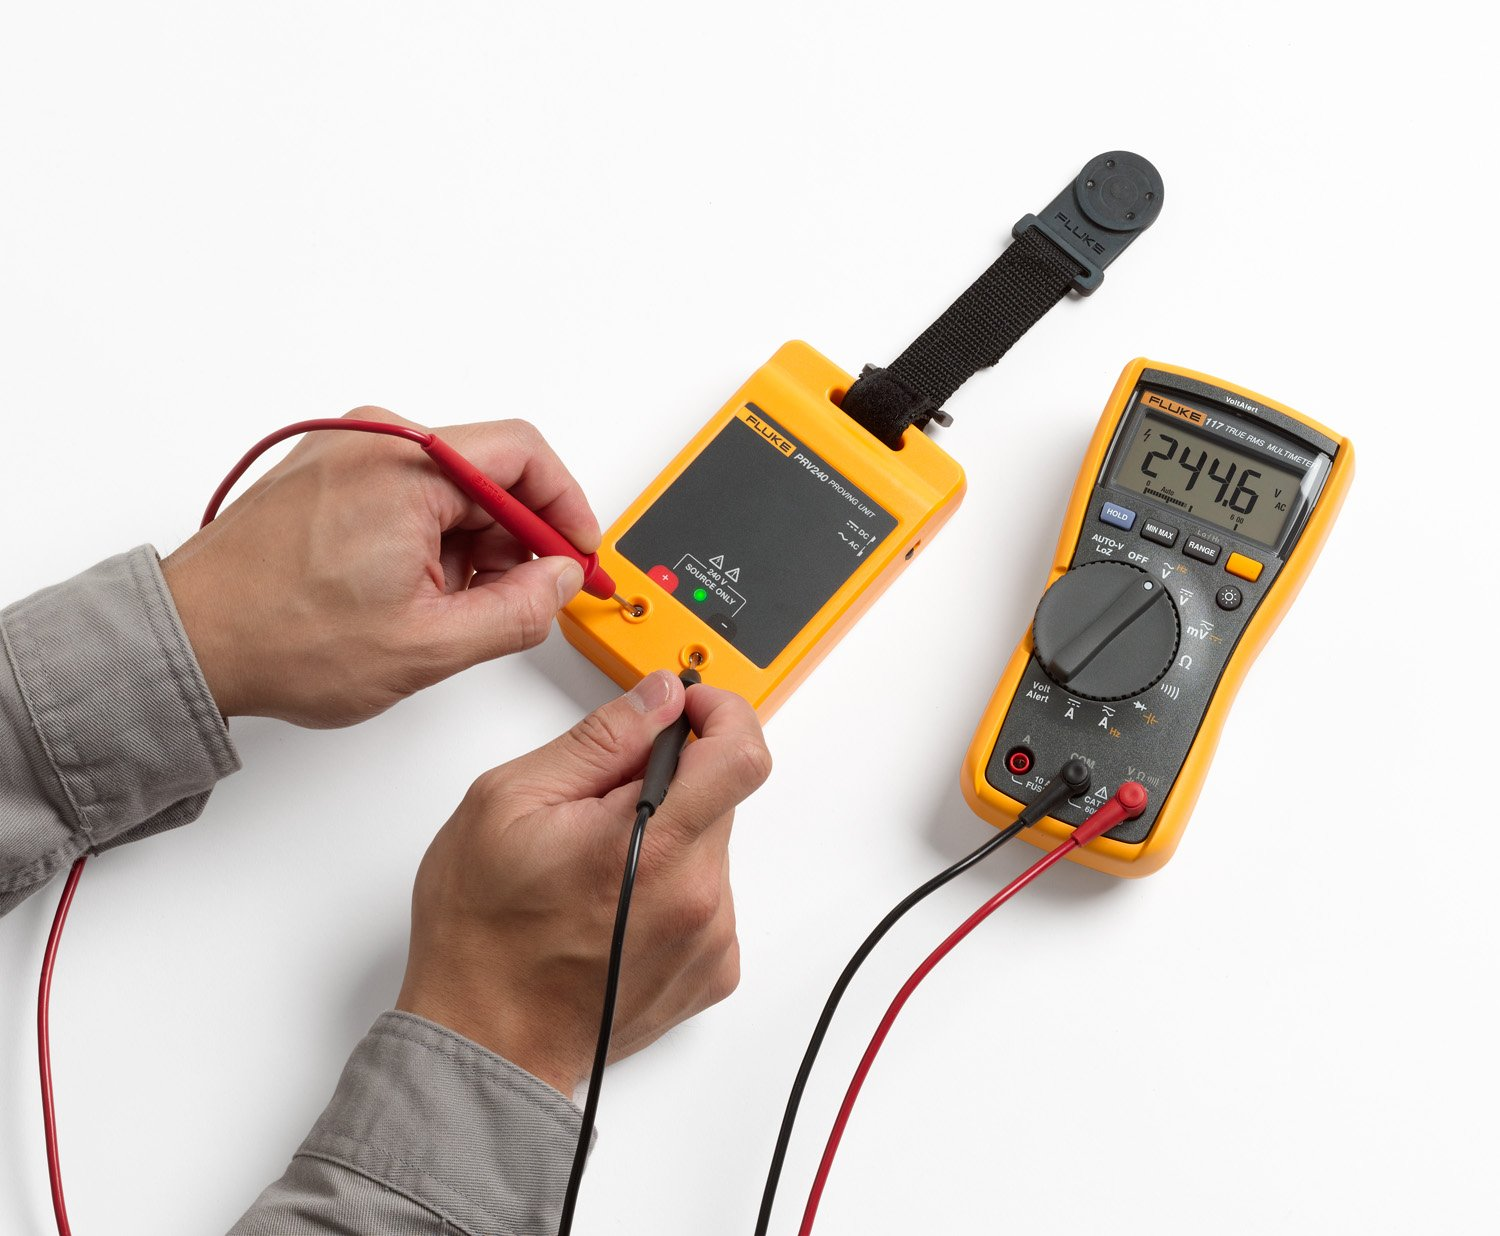 Testing a digital multimeter with the Fluke PRV240 Proving Unit